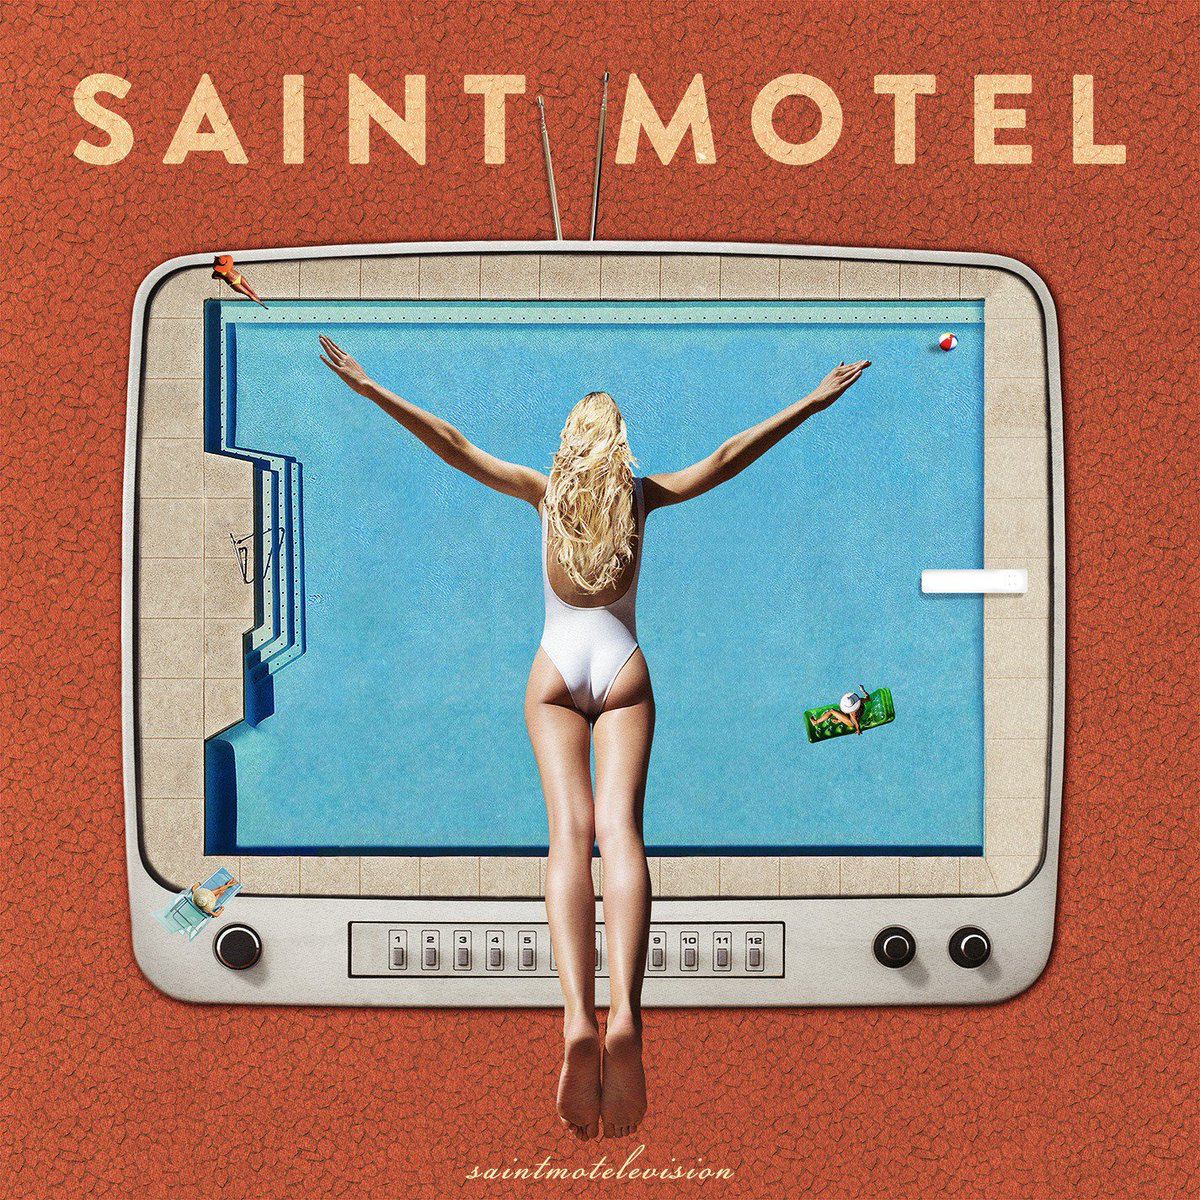 Beyond excited to announce our new album #saintmotelevision coming out worldwide Oct 21st! https://t.co/Zj0LTrXW85 https://t.co/NdywQbbPBT